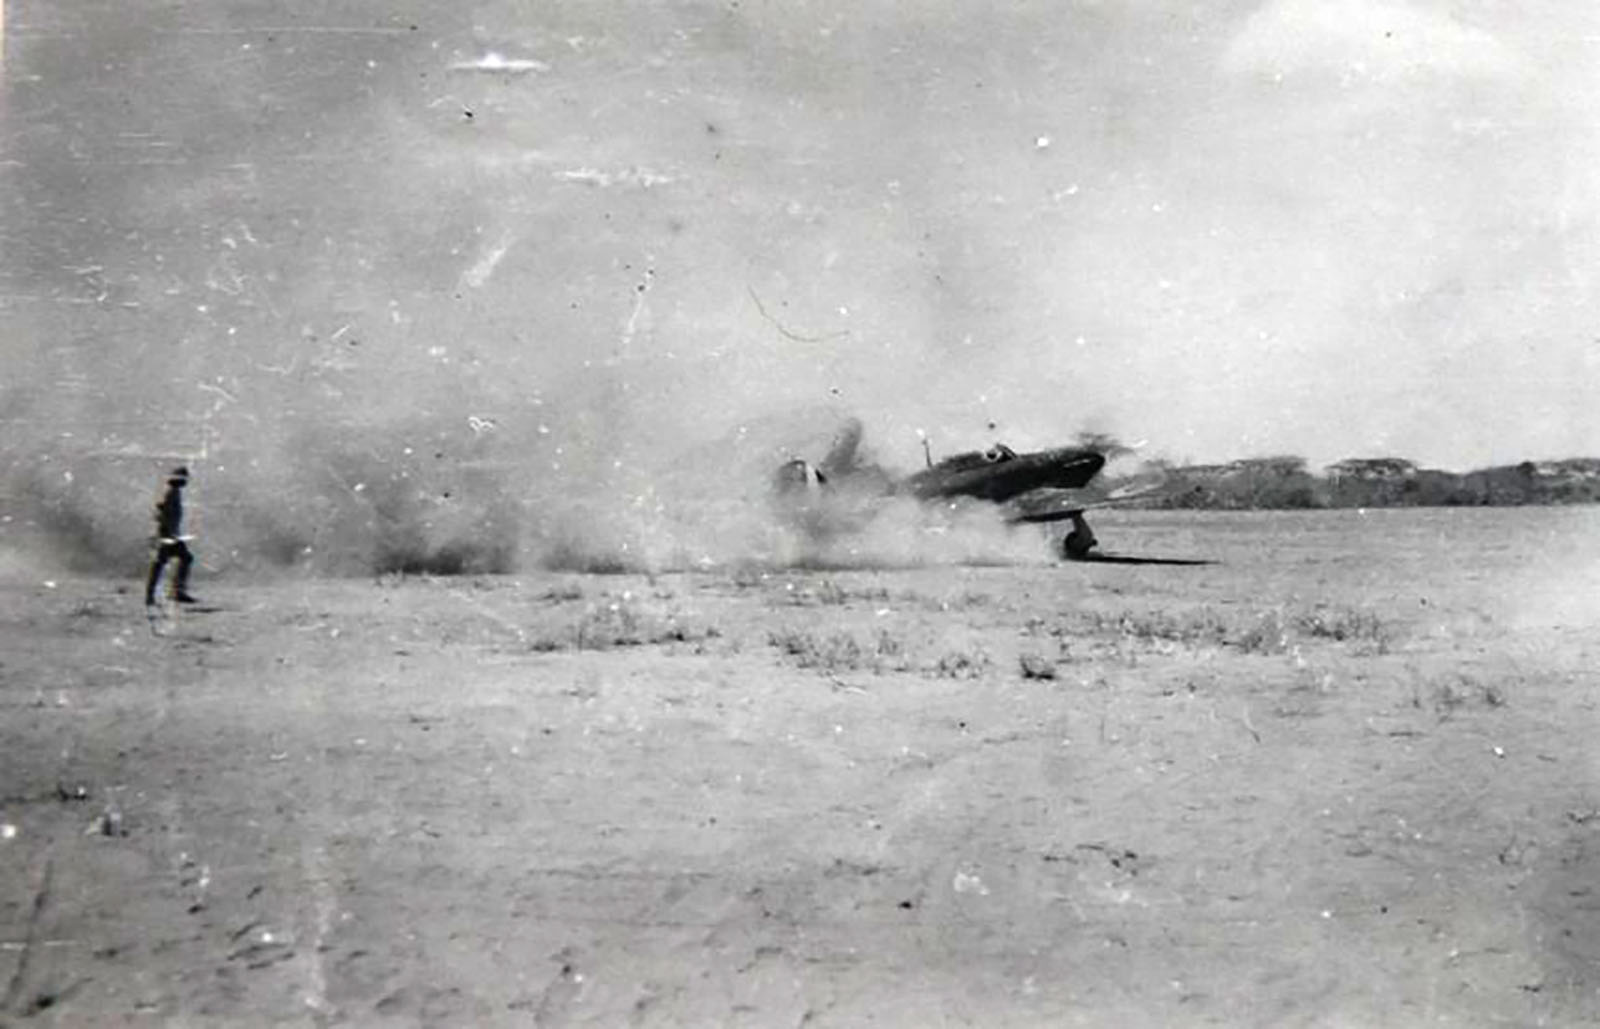 Hurricane I Trop SAAF 3Sqn unknown aircraft taxing Ethiopia East Africa March 1941 02